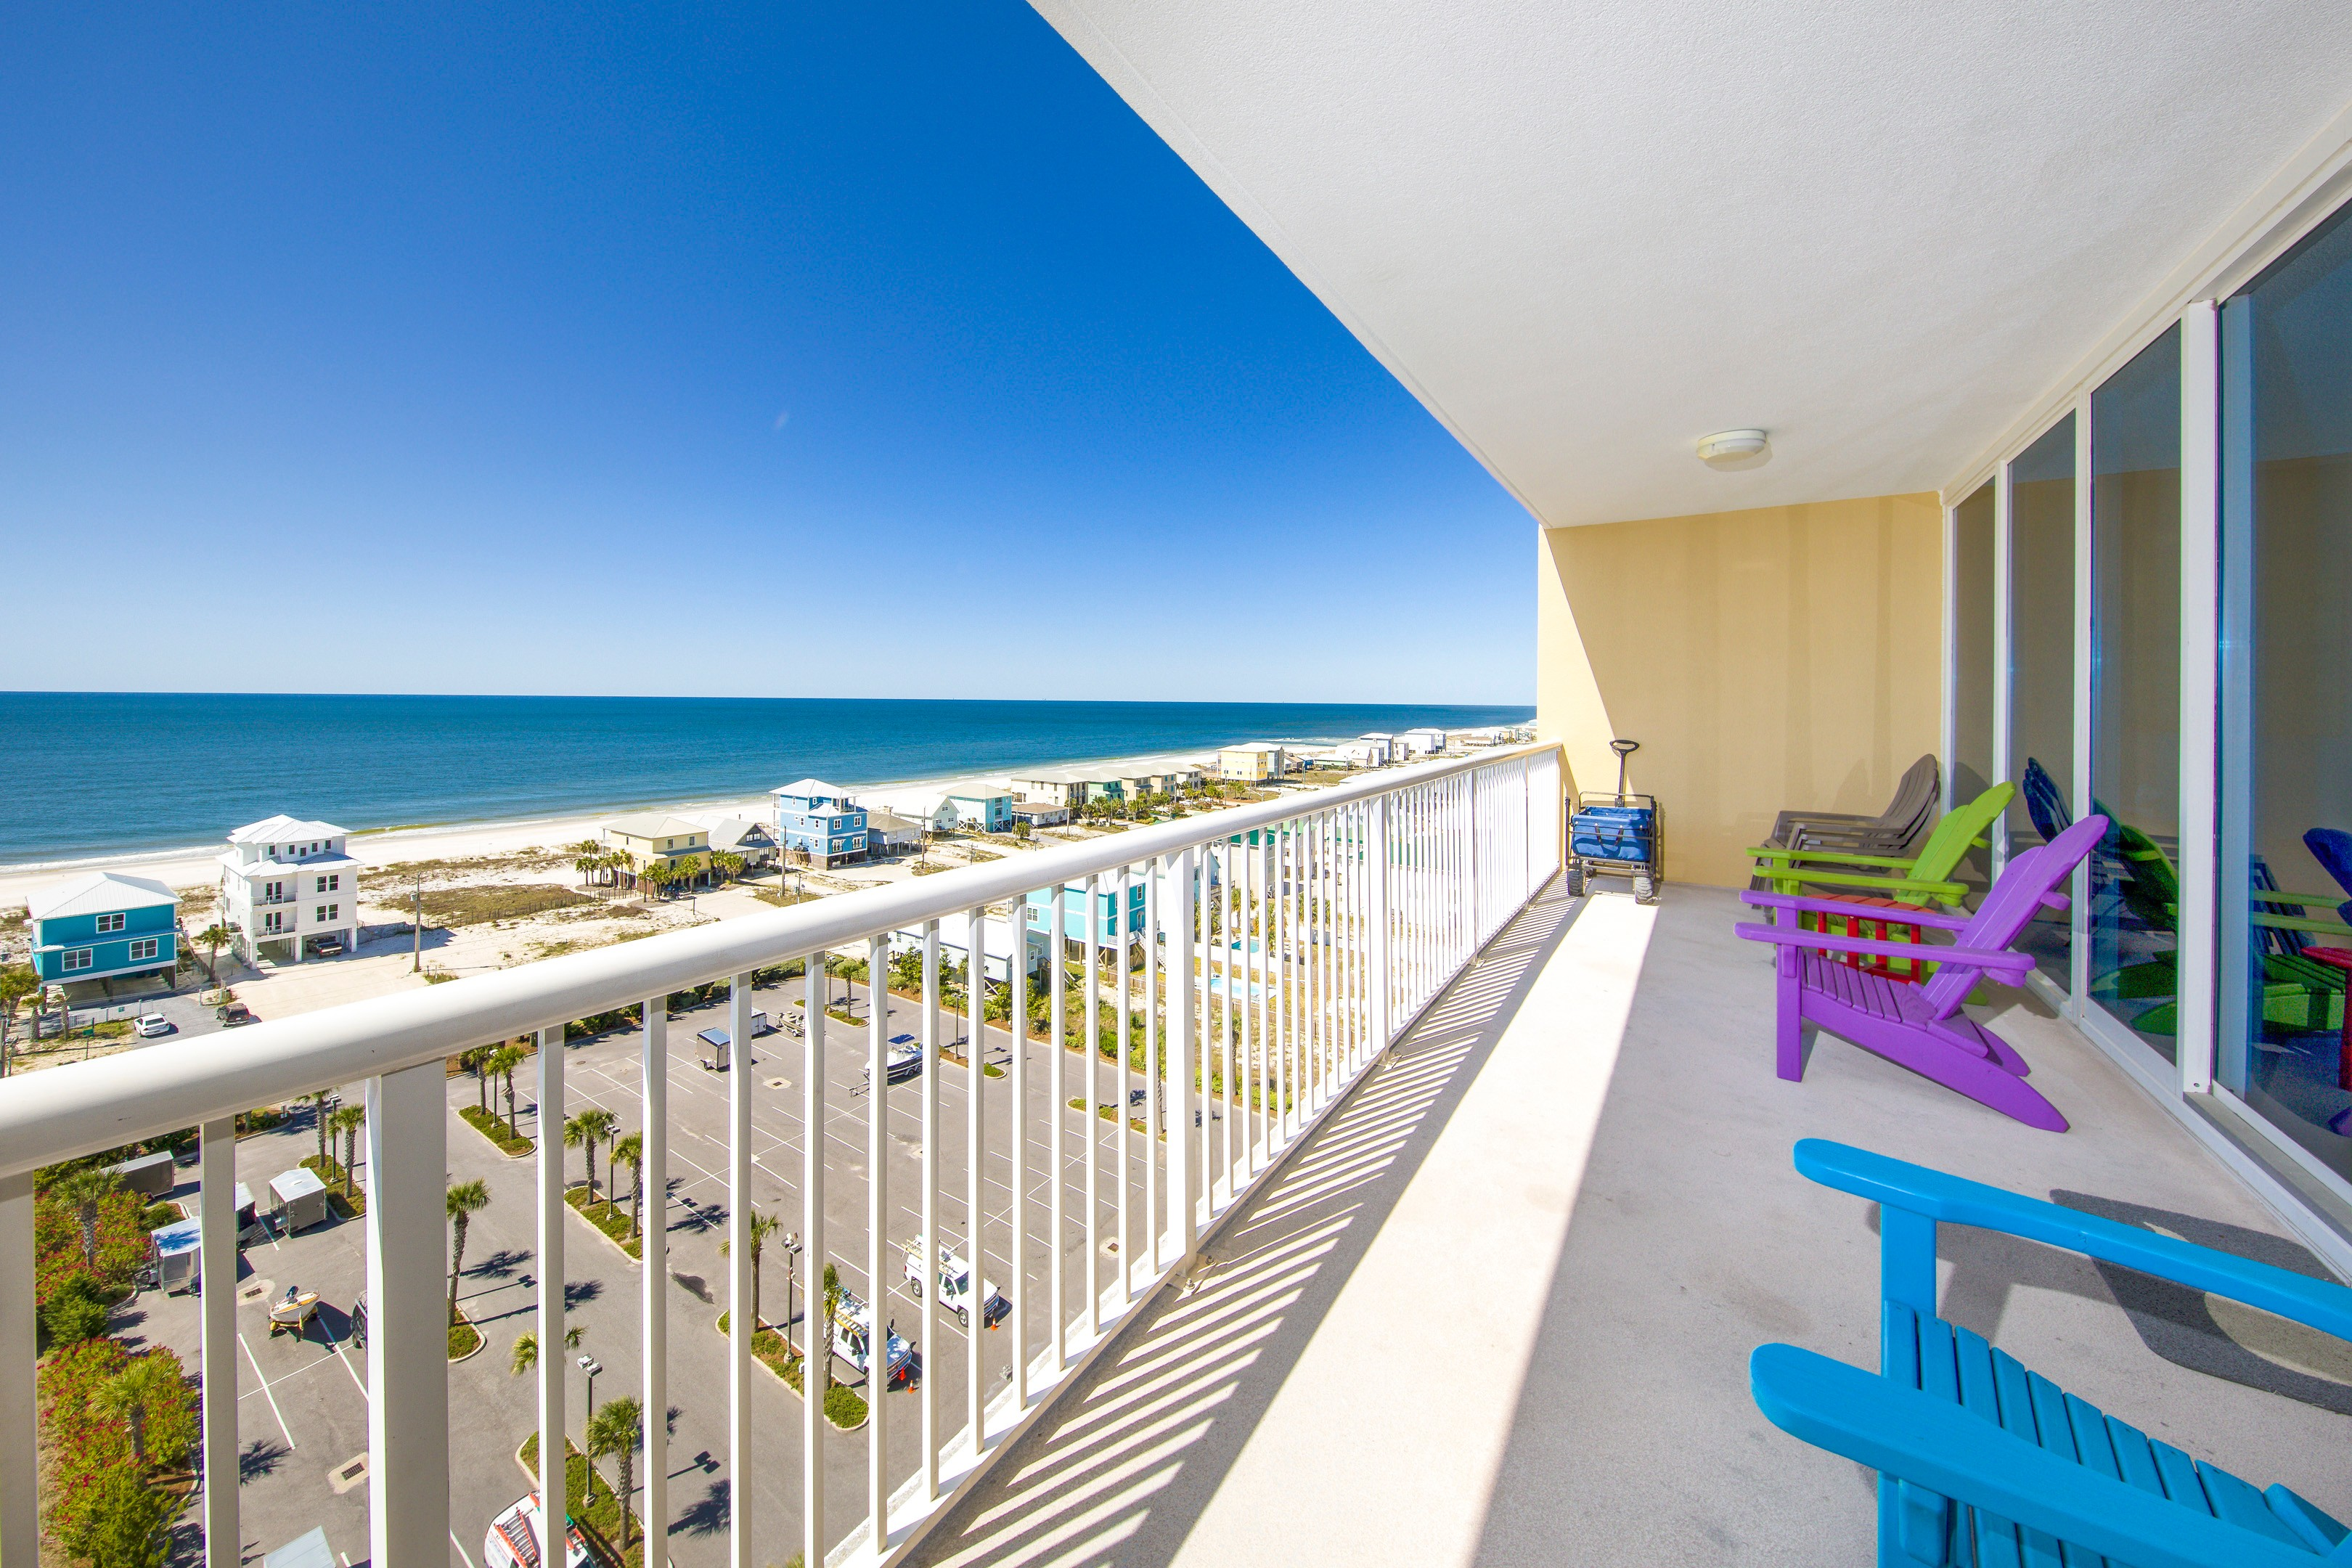 Enjoy the view of the Gulf and beach from the private balcony.